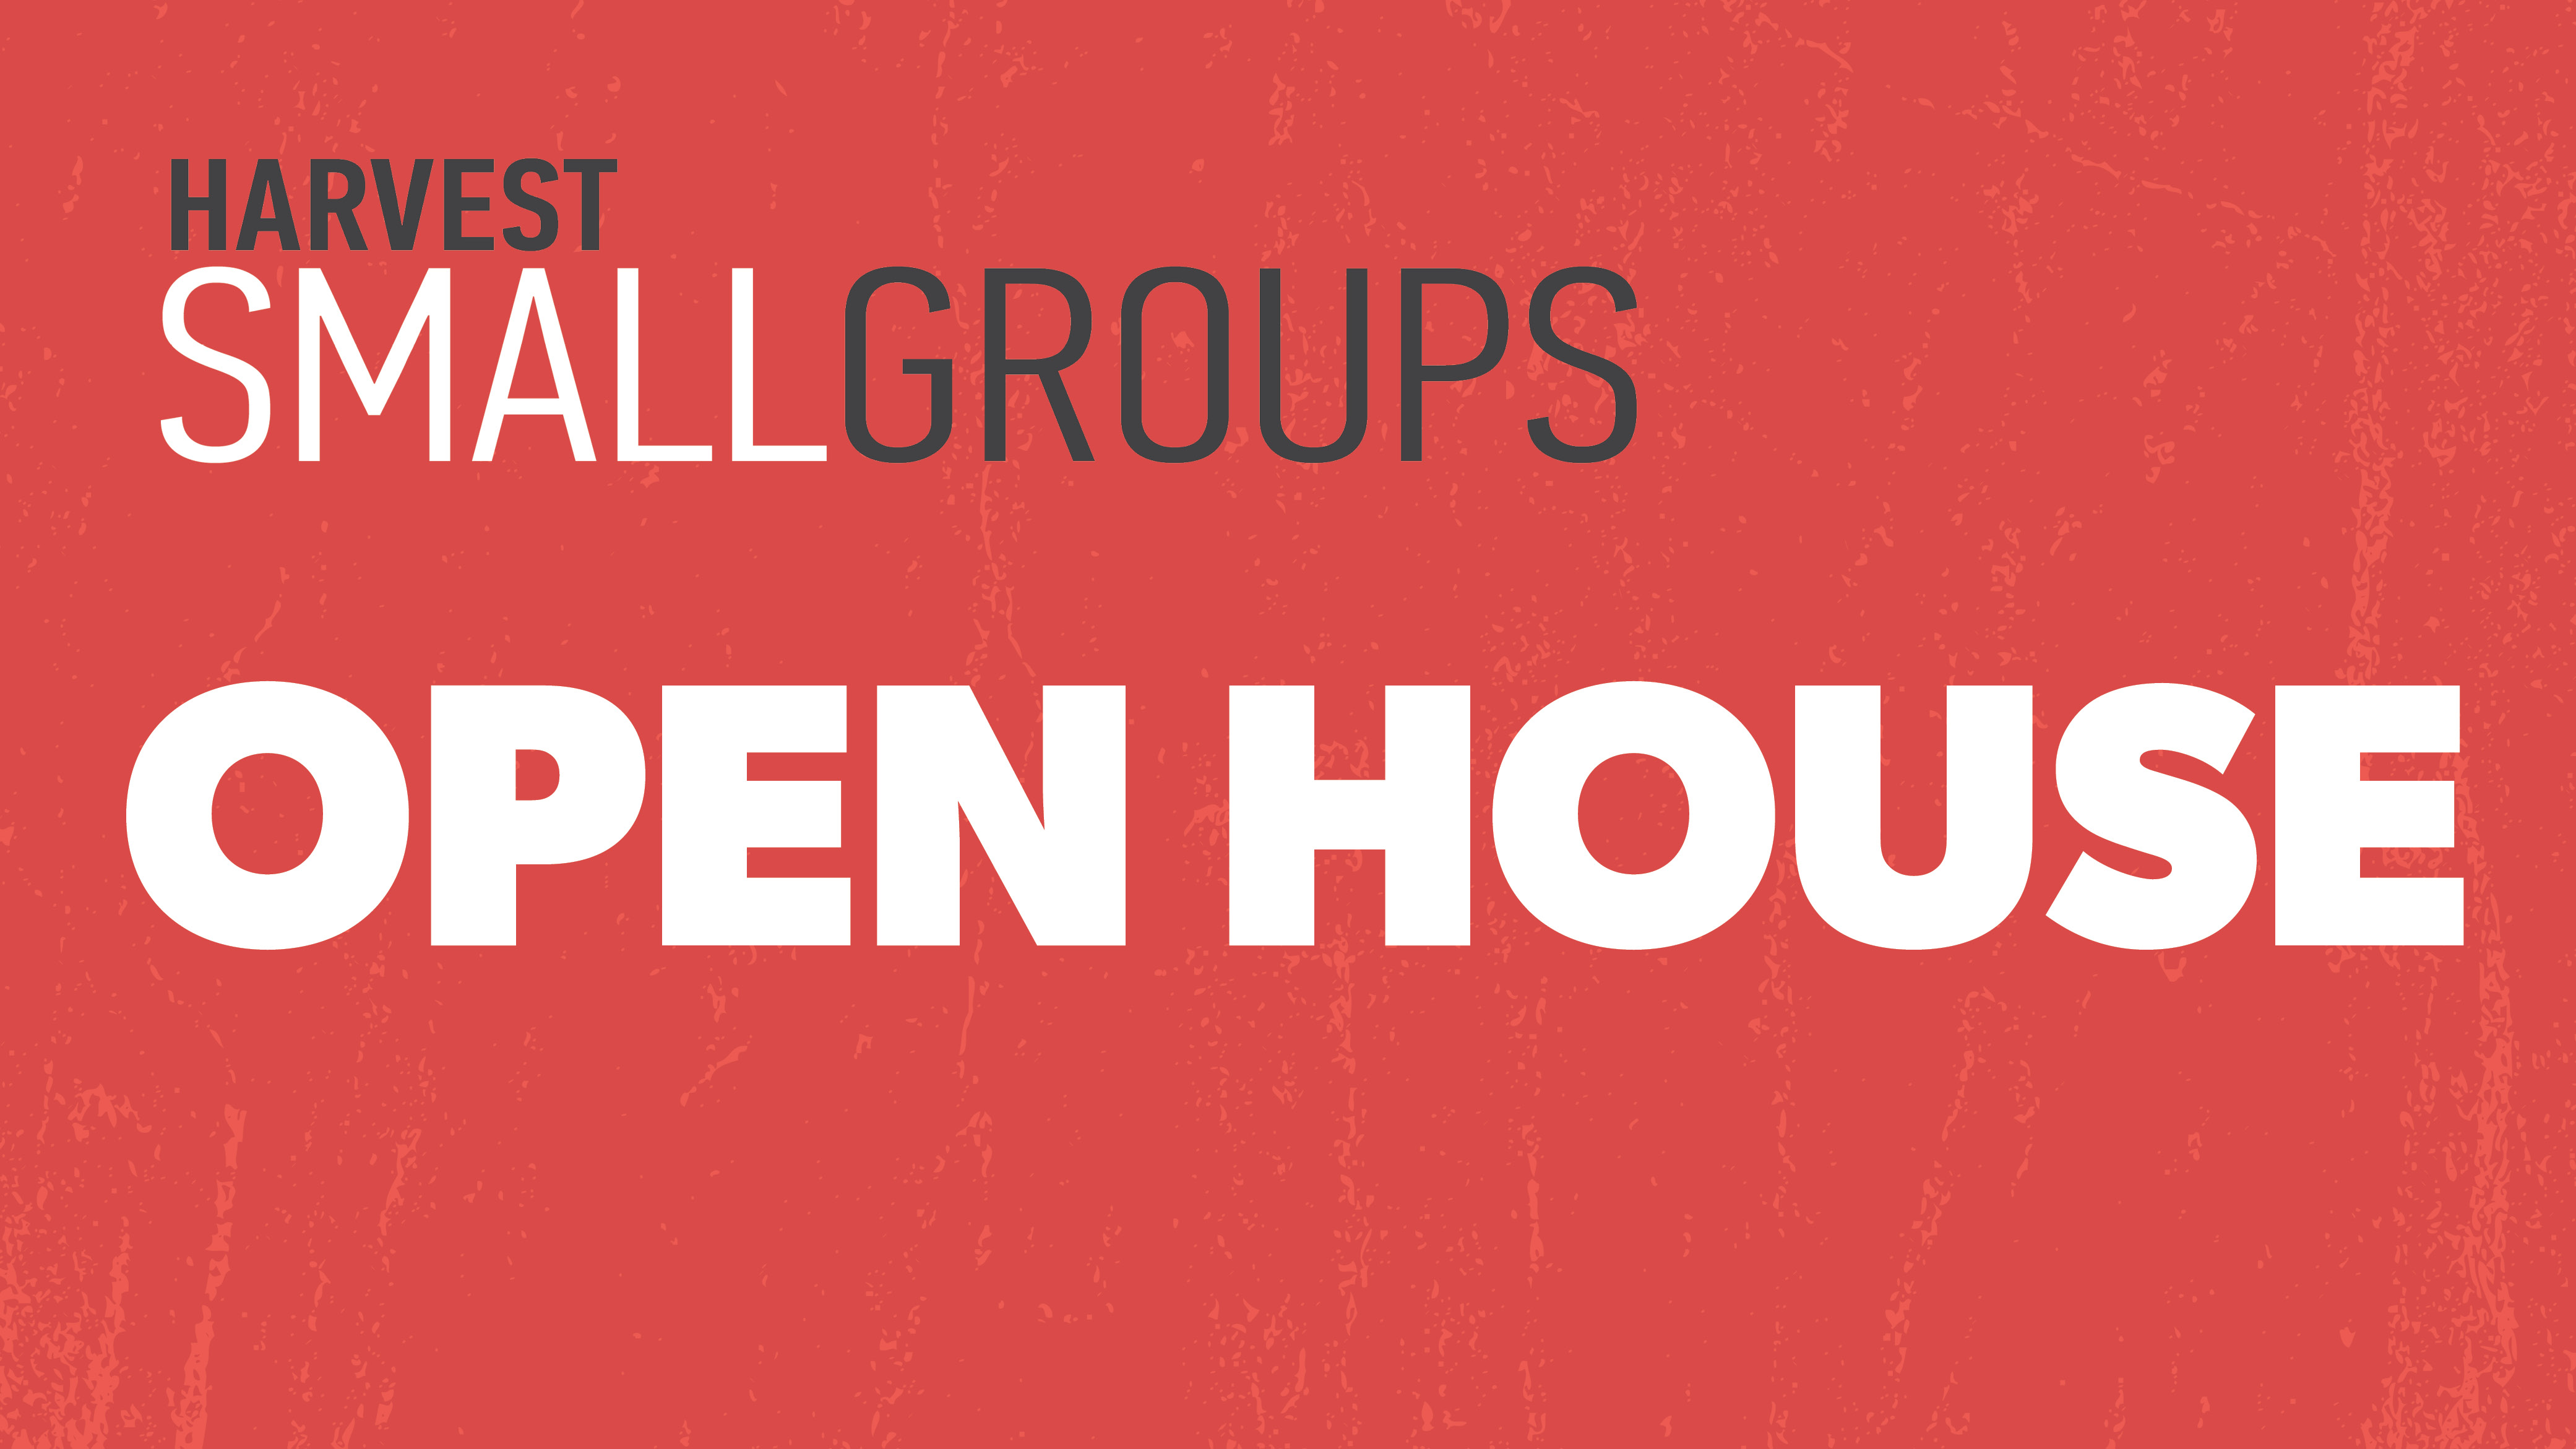 small groups open house thumbnail image